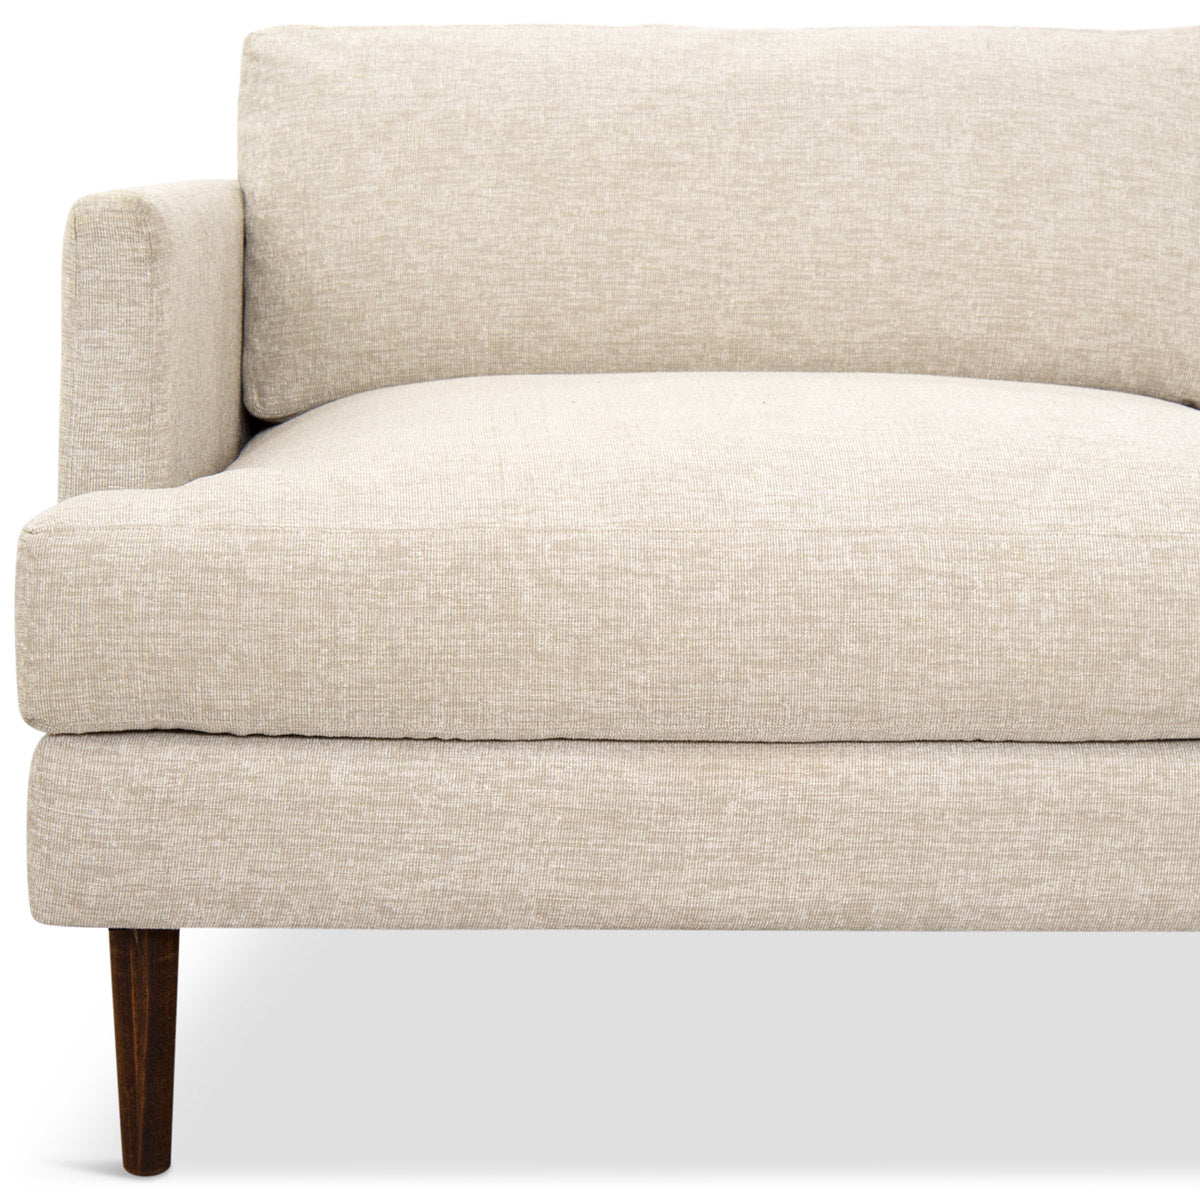 Slim Jim Sectional In Textured Fabric - ModShop1.com